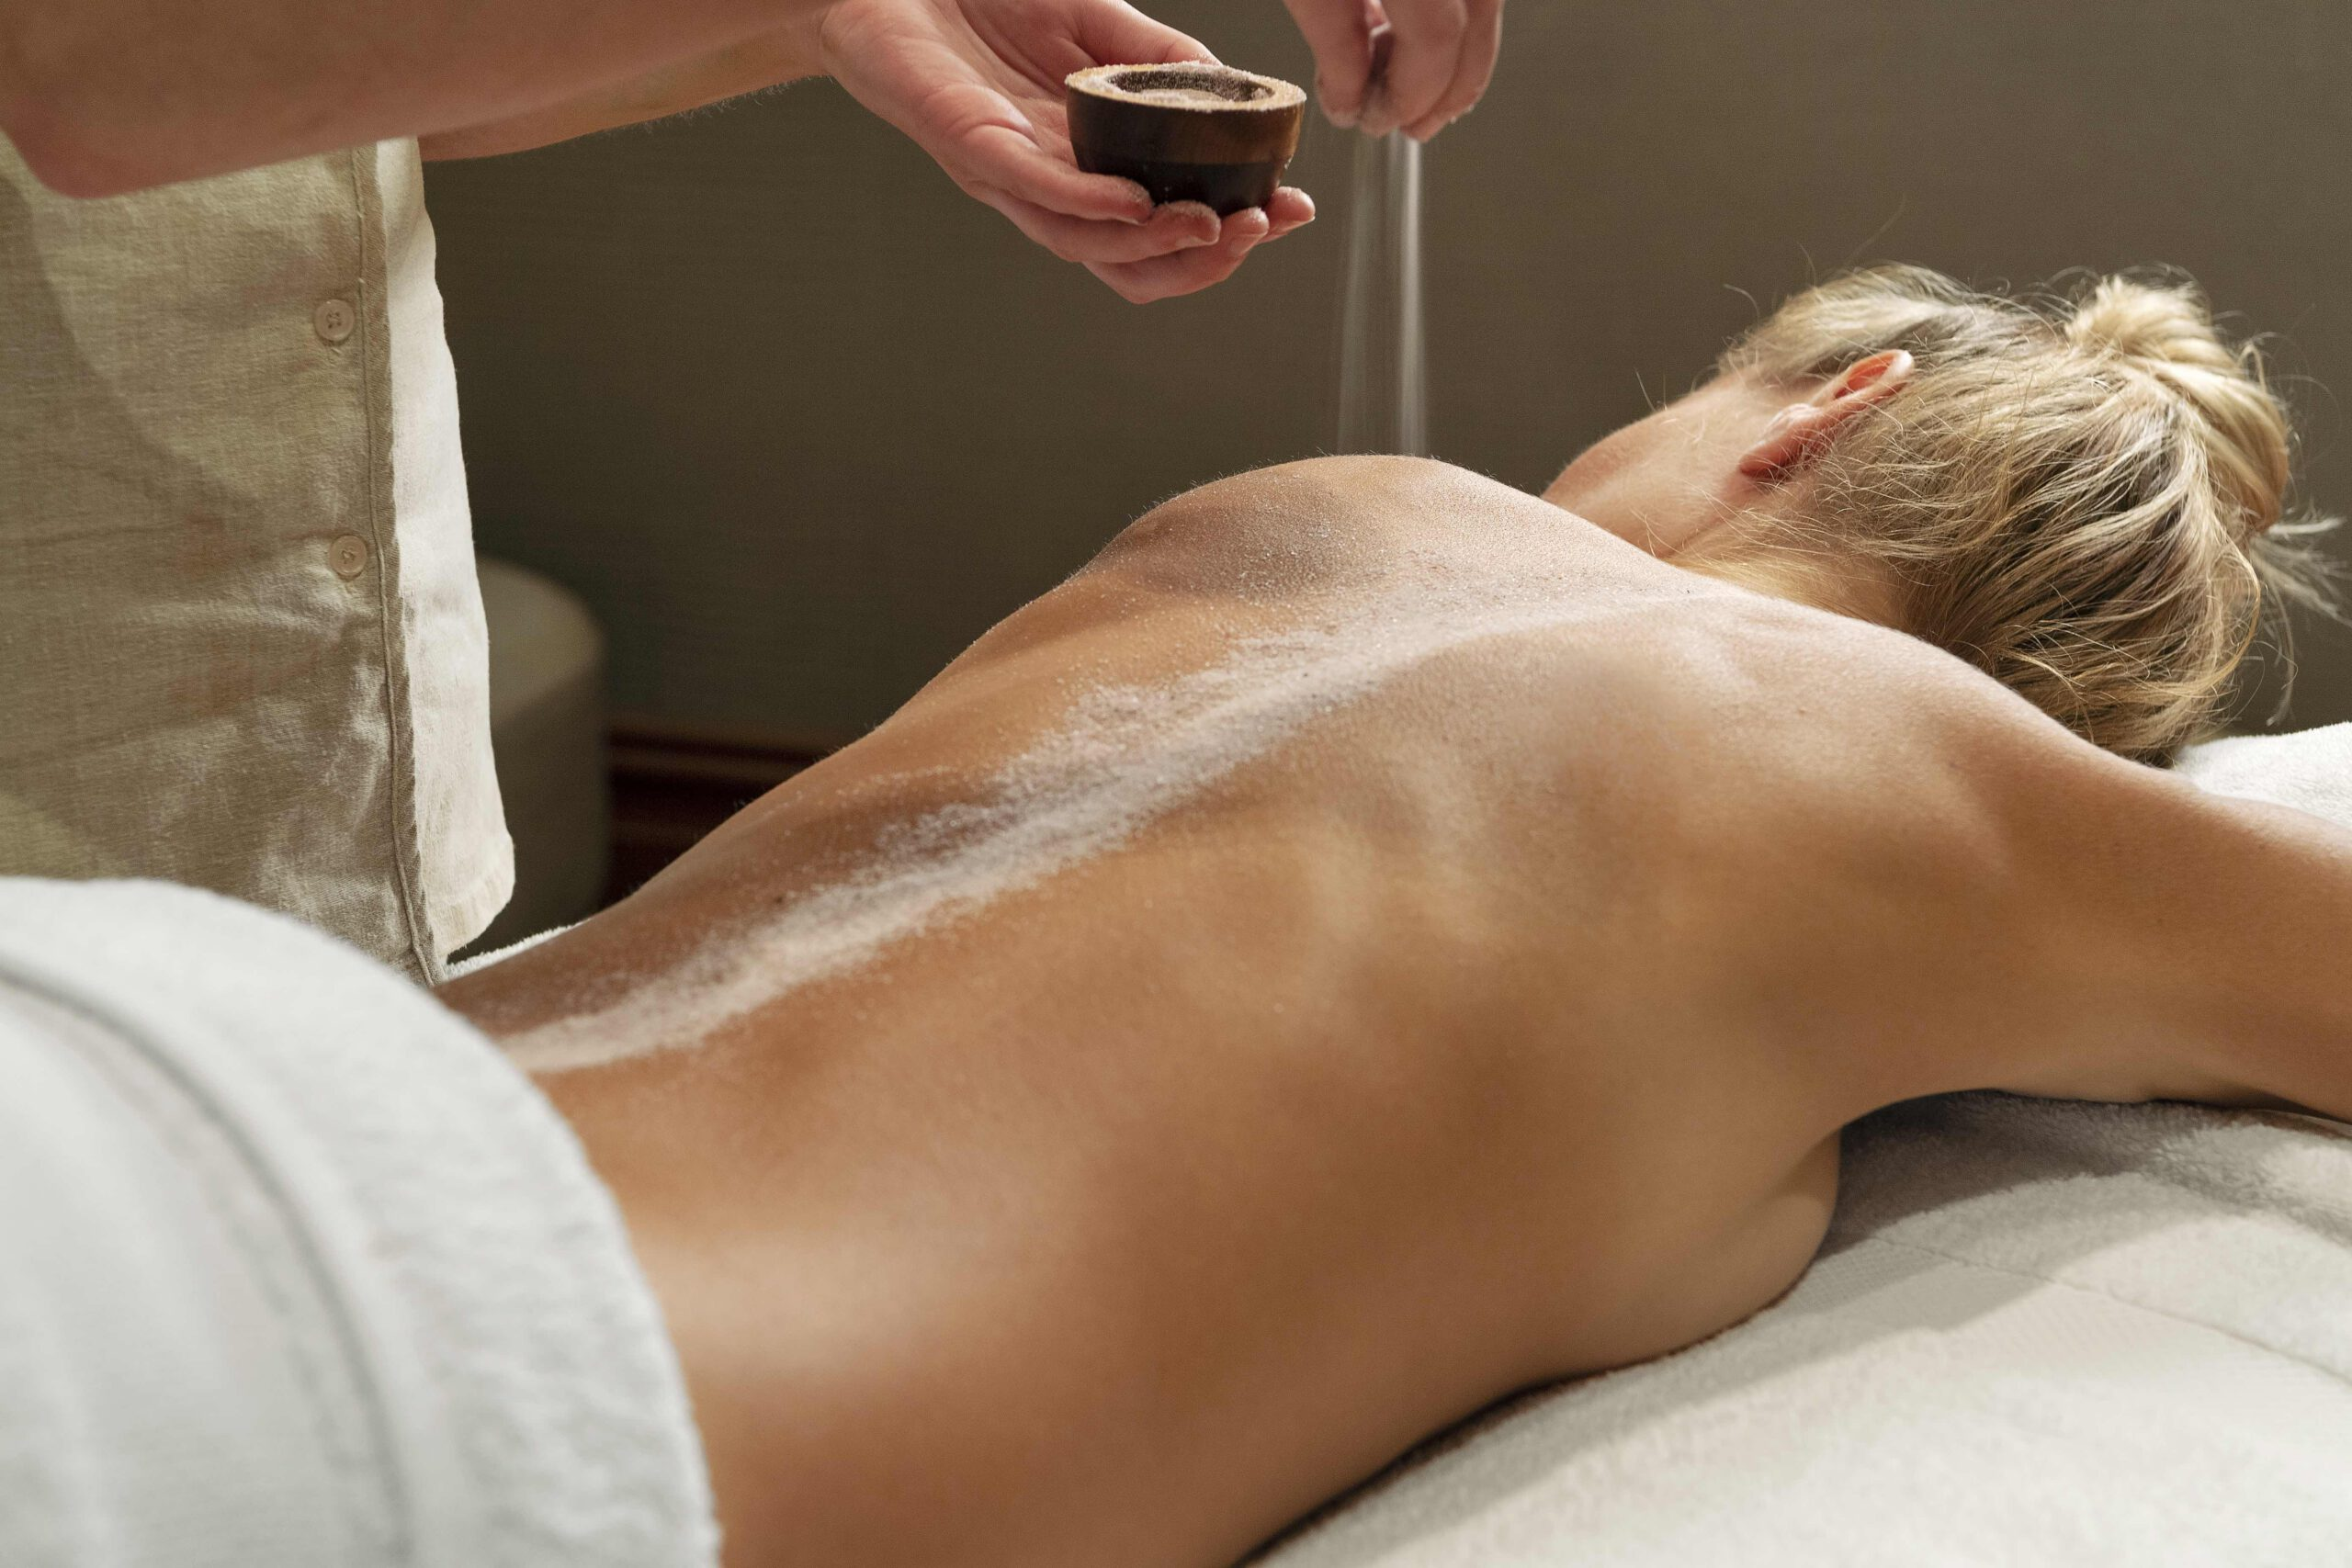 Woman lies on massage bed, therapist sprinkles material on her back